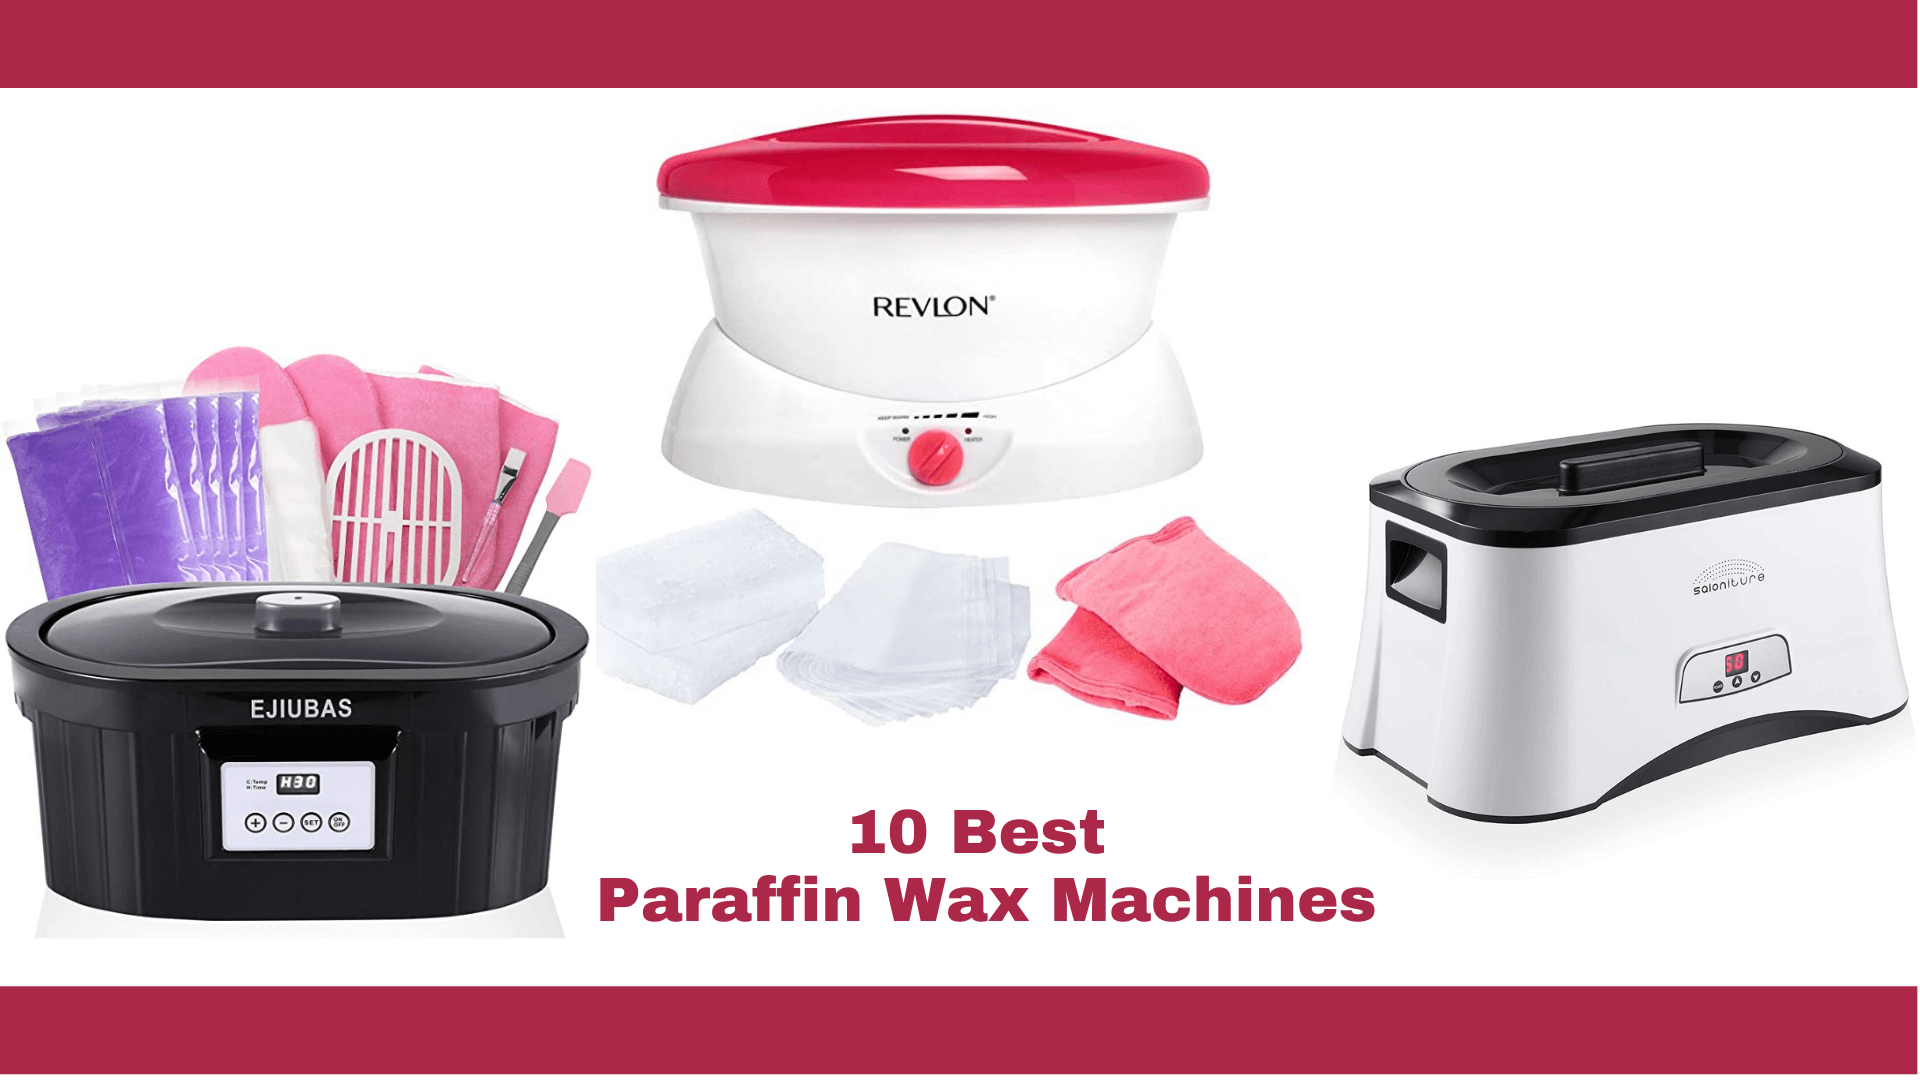 10 Best Paraffin Wax Machines